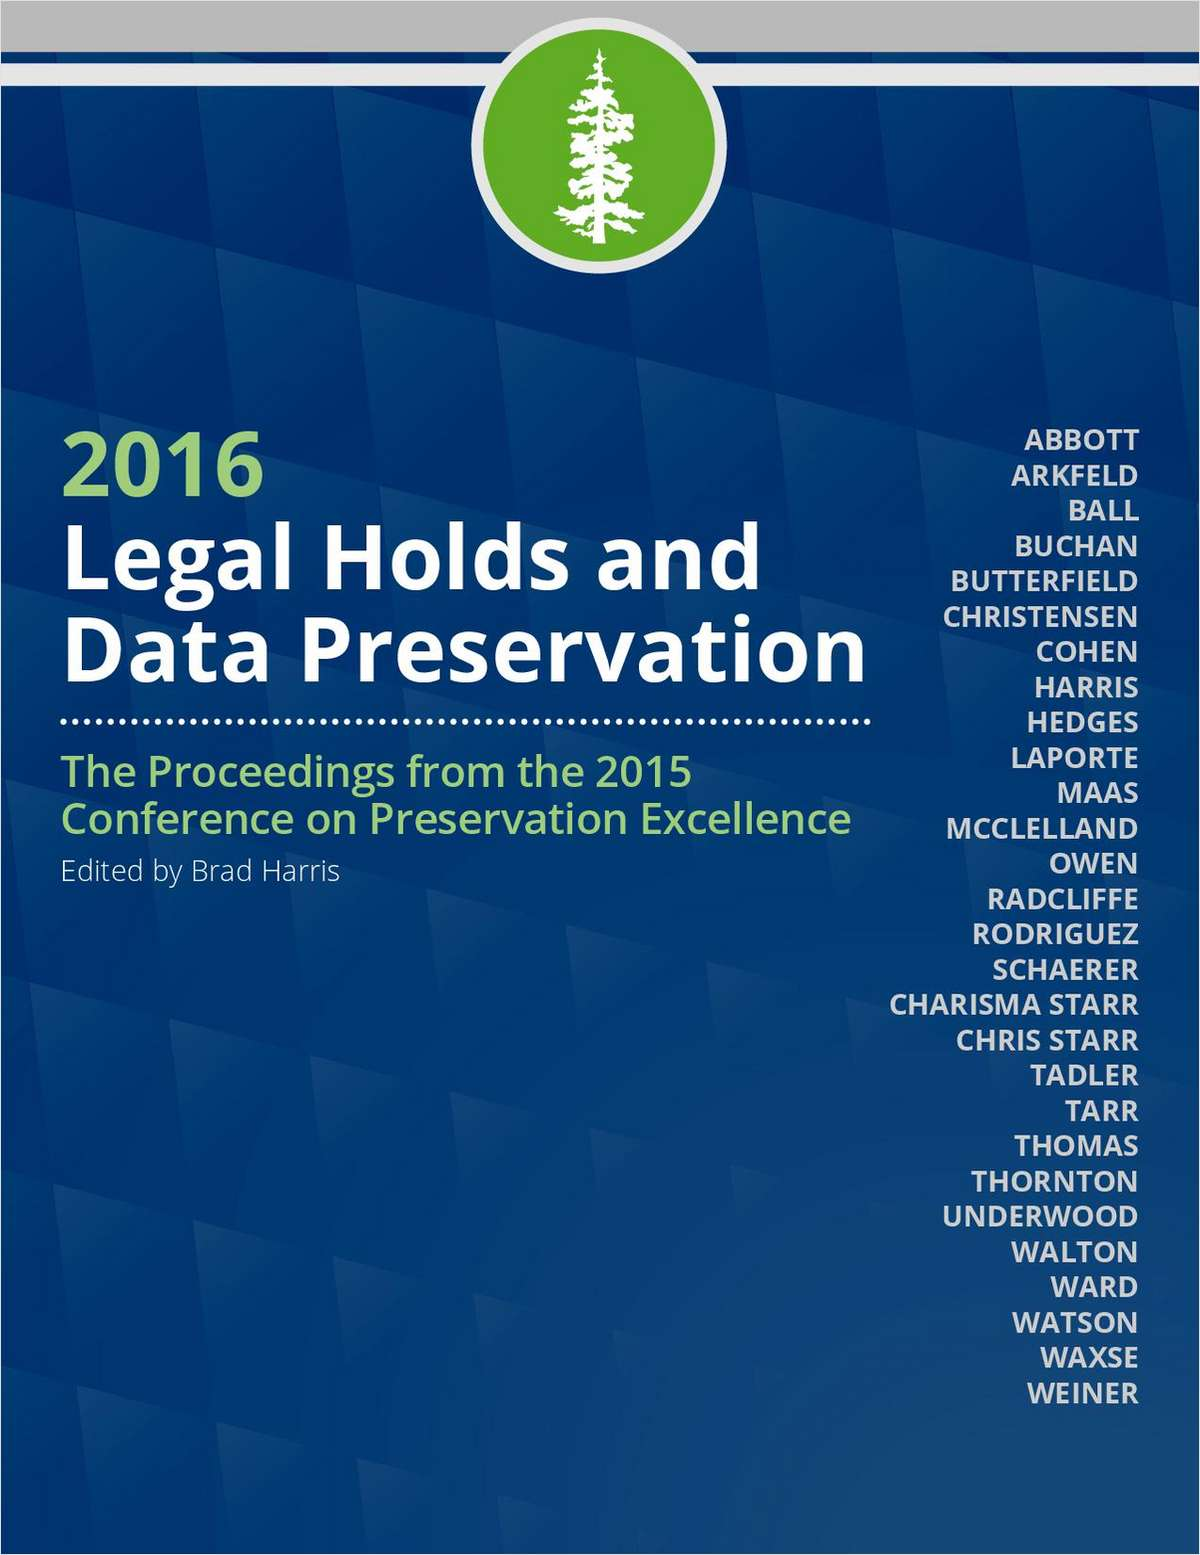 2016 Legal Holds and Data Preservation